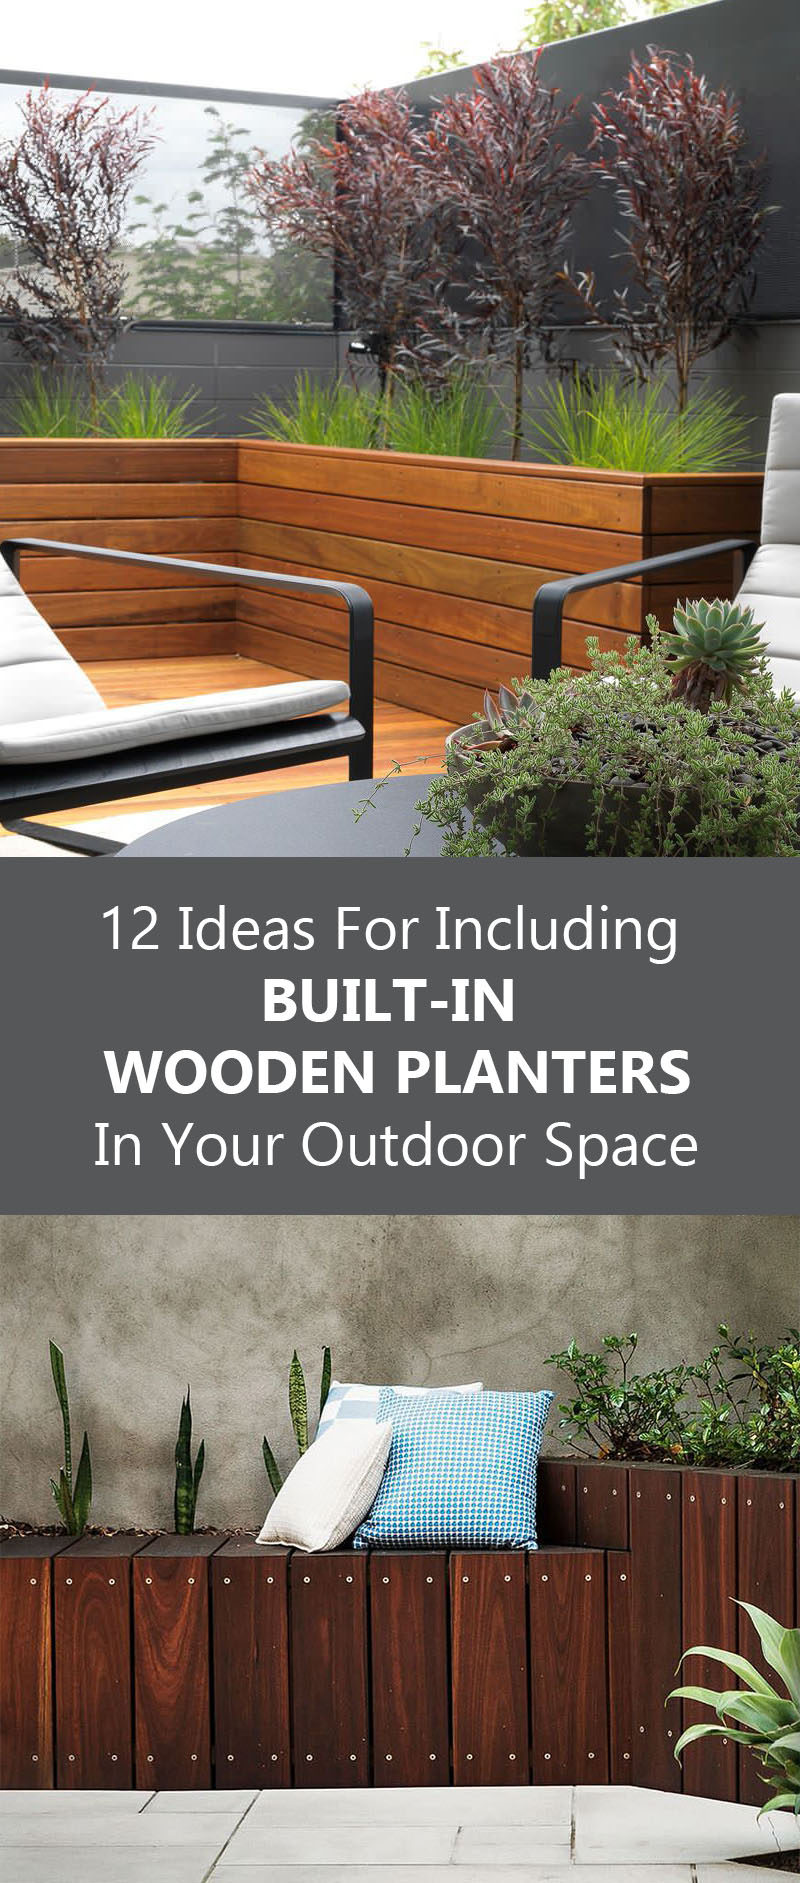 12 Ideas For Including Built-In Wooden Planters In Your Outdoor Space